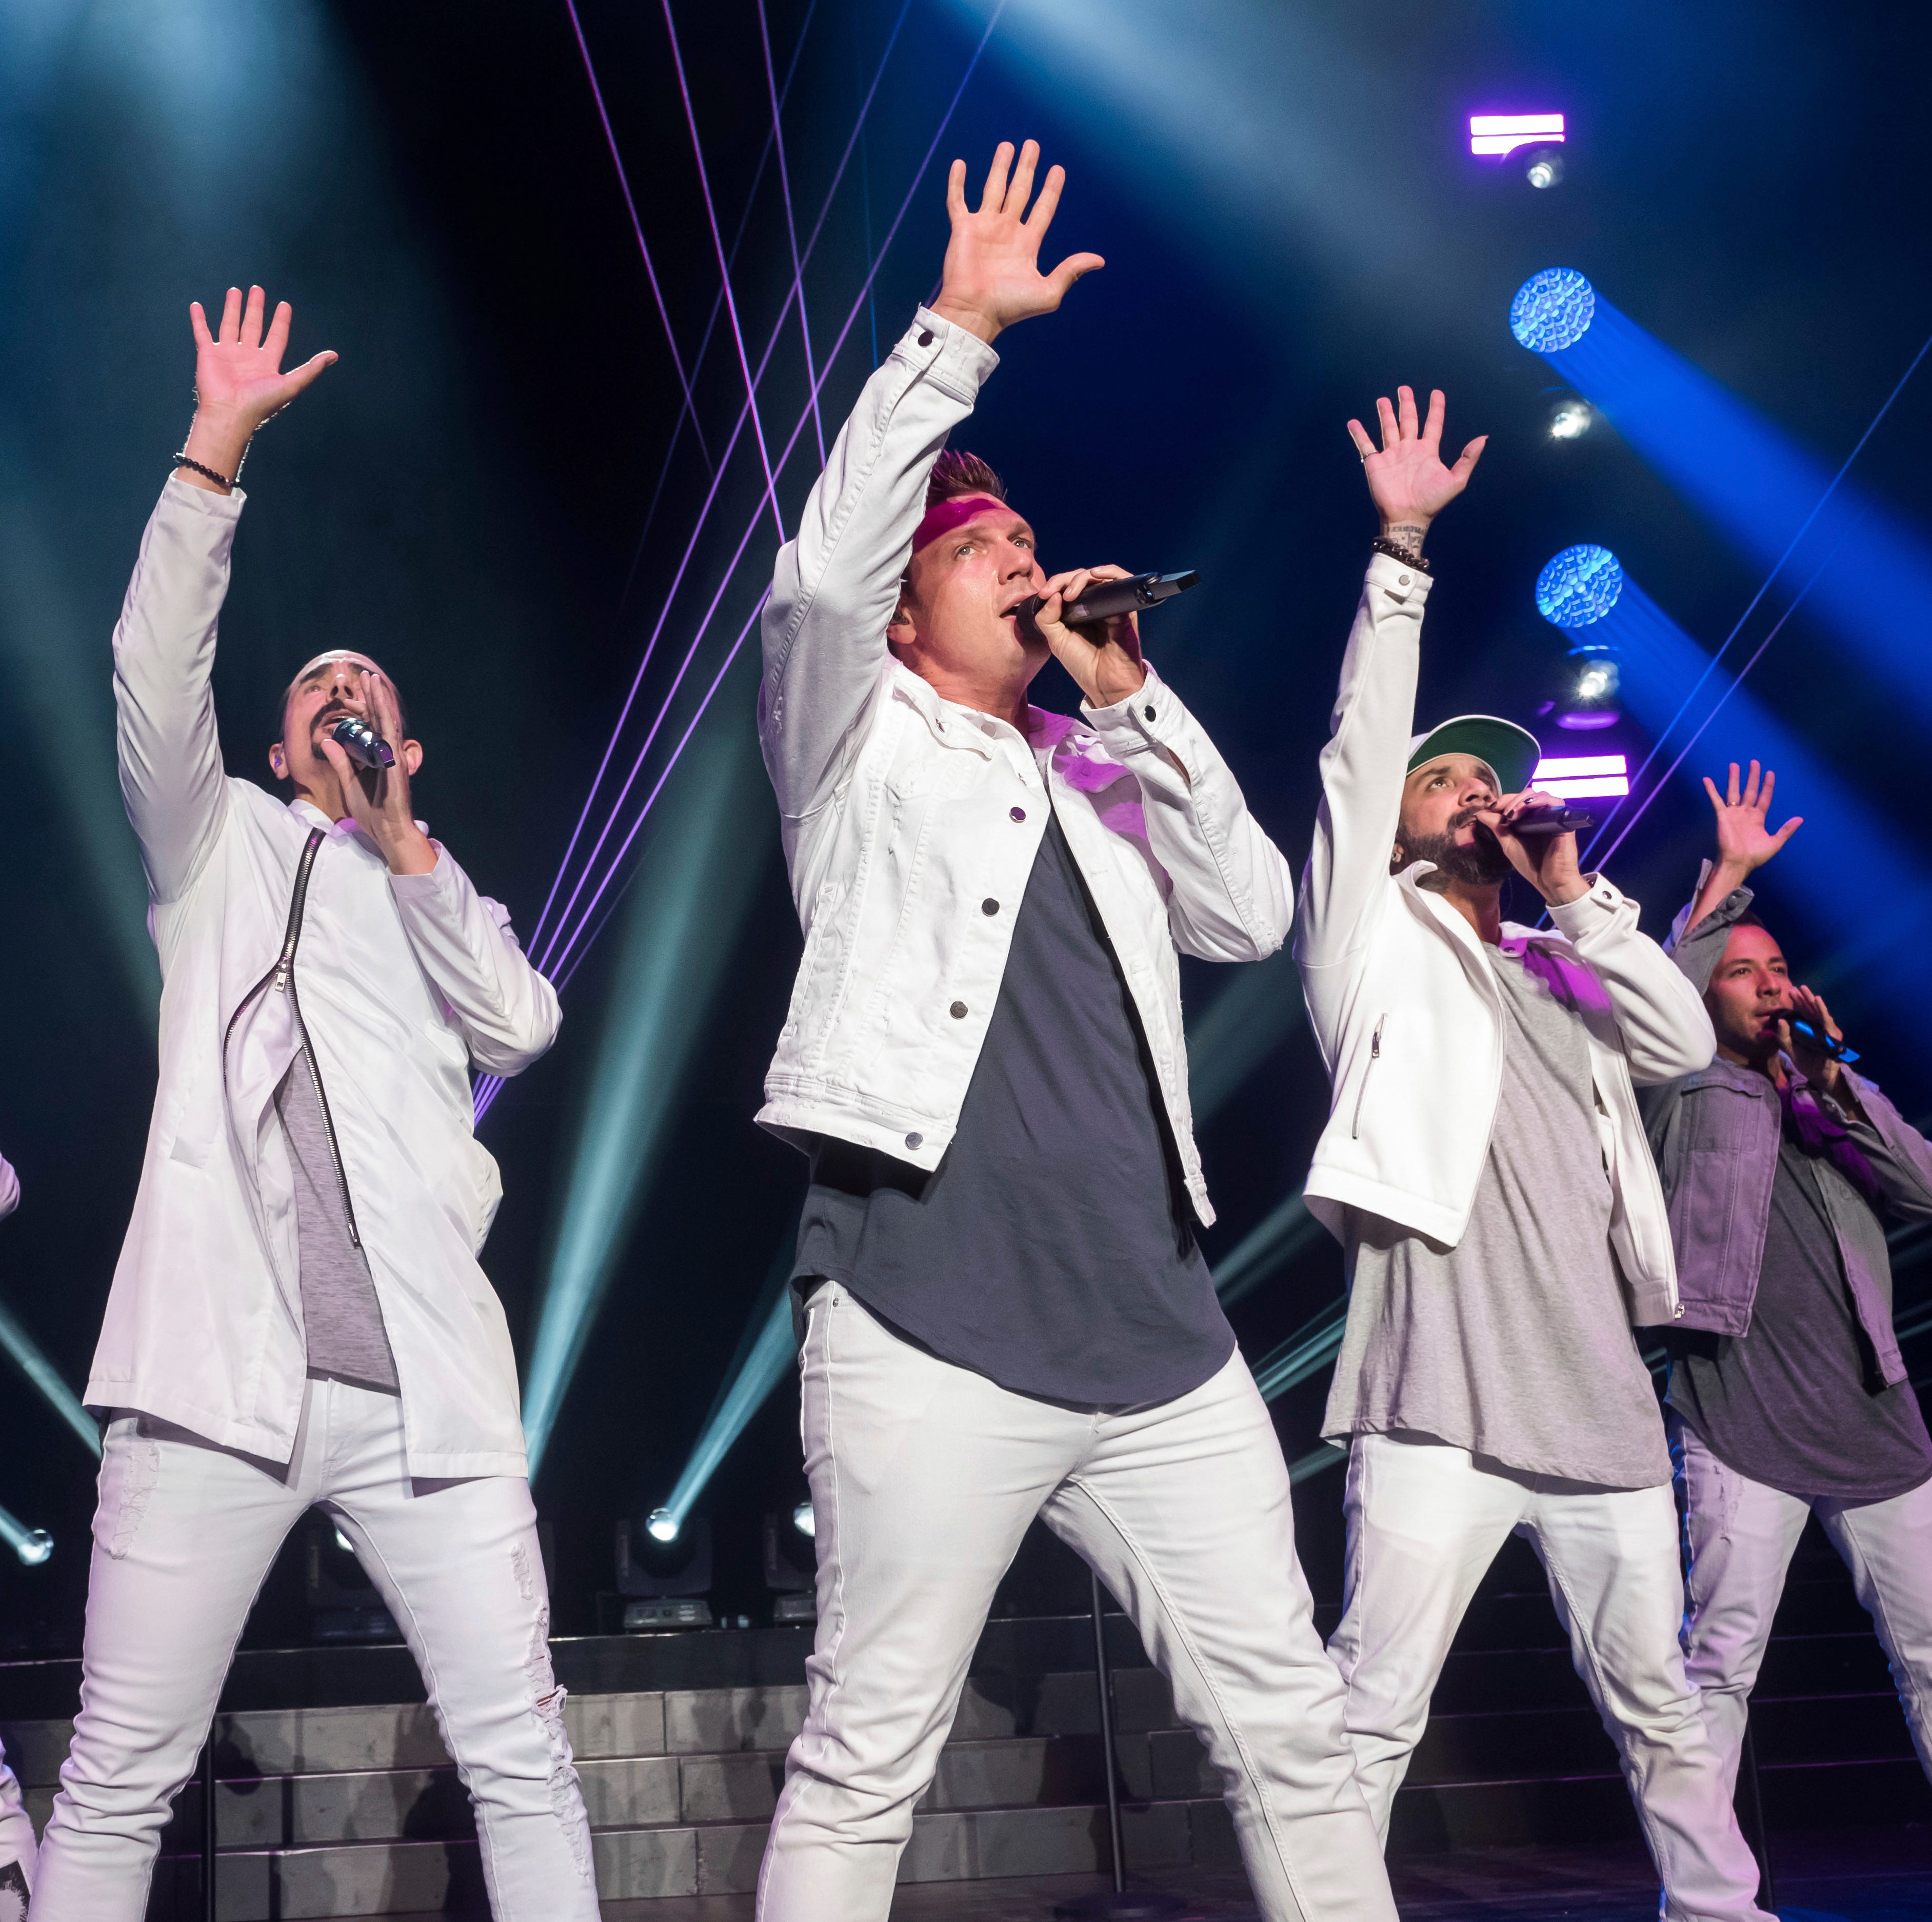 Backstreet Boys members, from left, Brian Littrell, Kevin Richardson, Nick Carter, AJ McLean and Howie Dorough perform at KTUphoria 2018 at Jones Beach Theater on Saturday, June 16, 2018, in Wantagh, N.Y. (Photo by Charles Sykes/Invision/AP) ORG XMIT: NYCS215